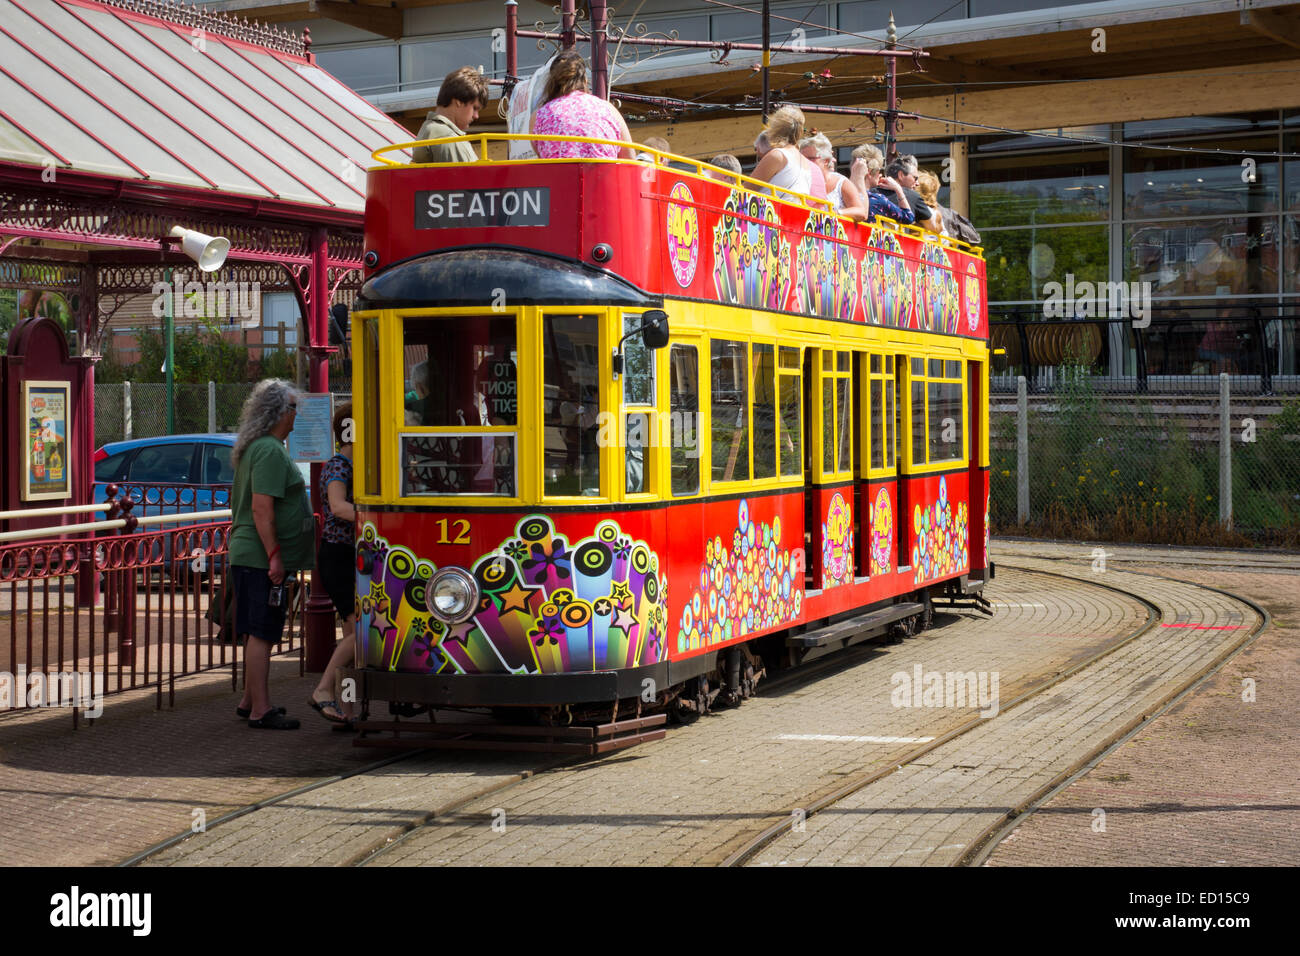 The Seaton electric tram at the station letting on more tourists to go on a jounrey around the town - Stock Image